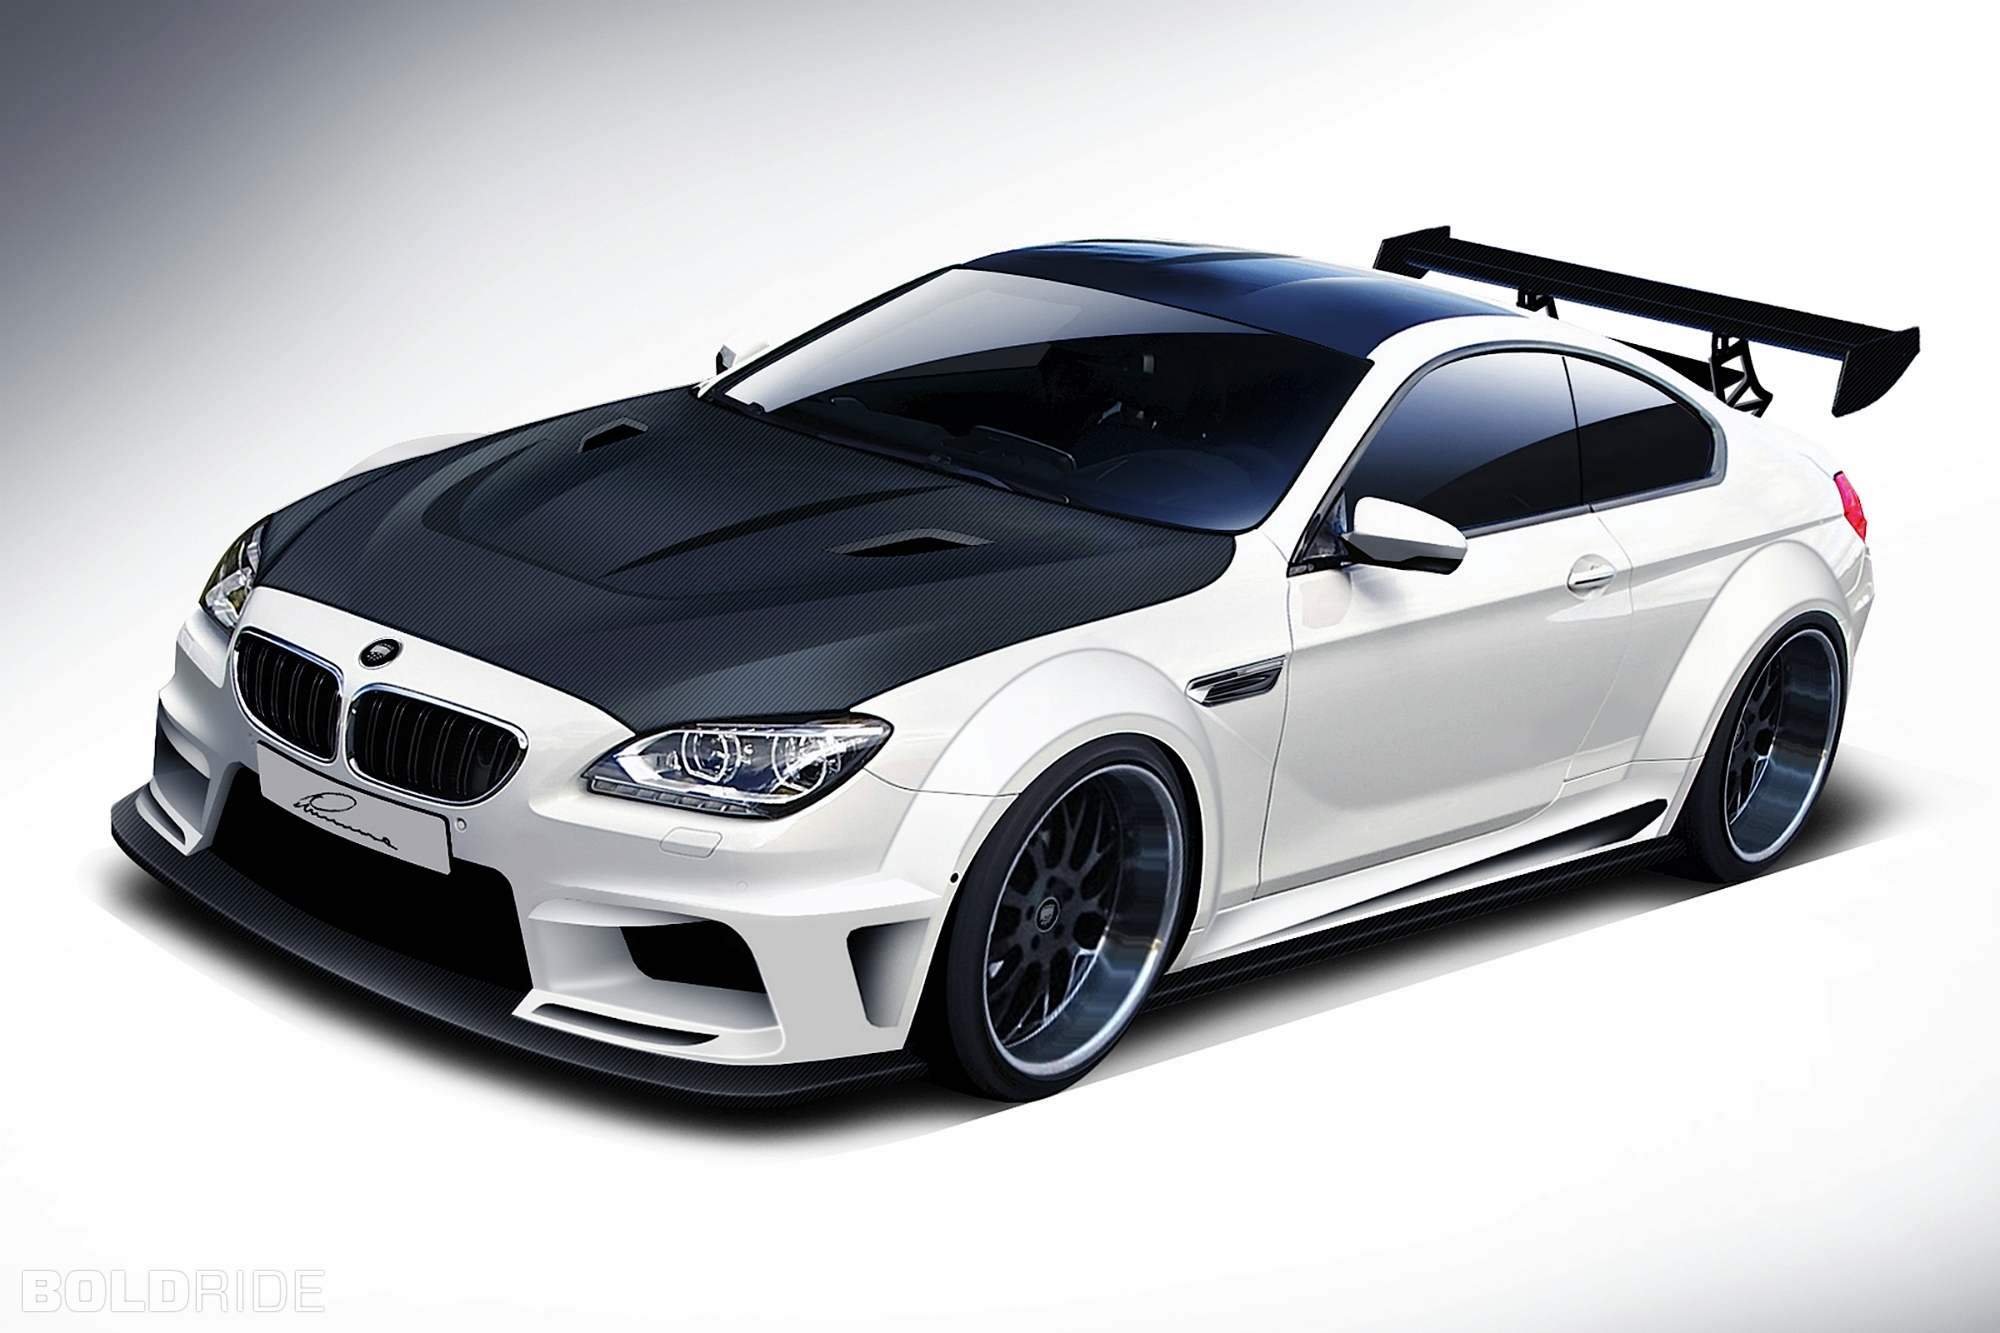 lumma 2012 design bmw m6 tuning q wallpaper 2000x1333. Black Bedroom Furniture Sets. Home Design Ideas